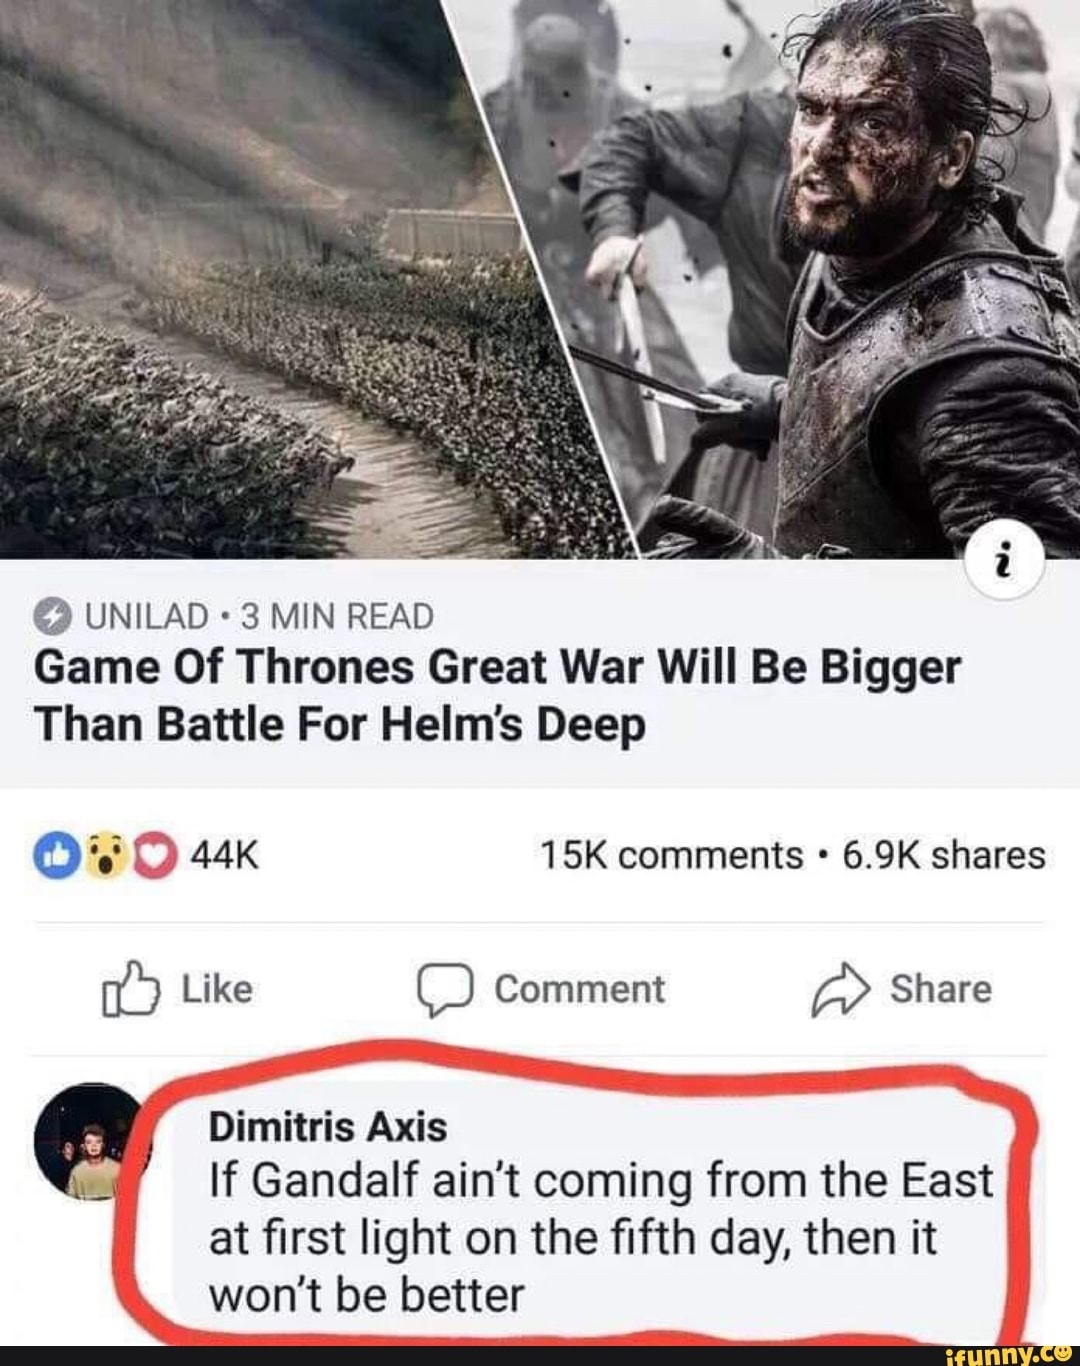 O UNILAD - 3 MIN READ Game Of Thrones Great War Will Be Bigger Than Battle  For Helm's Deep Dimitris Axis If Gandalf ain't coming from the East at first  light on